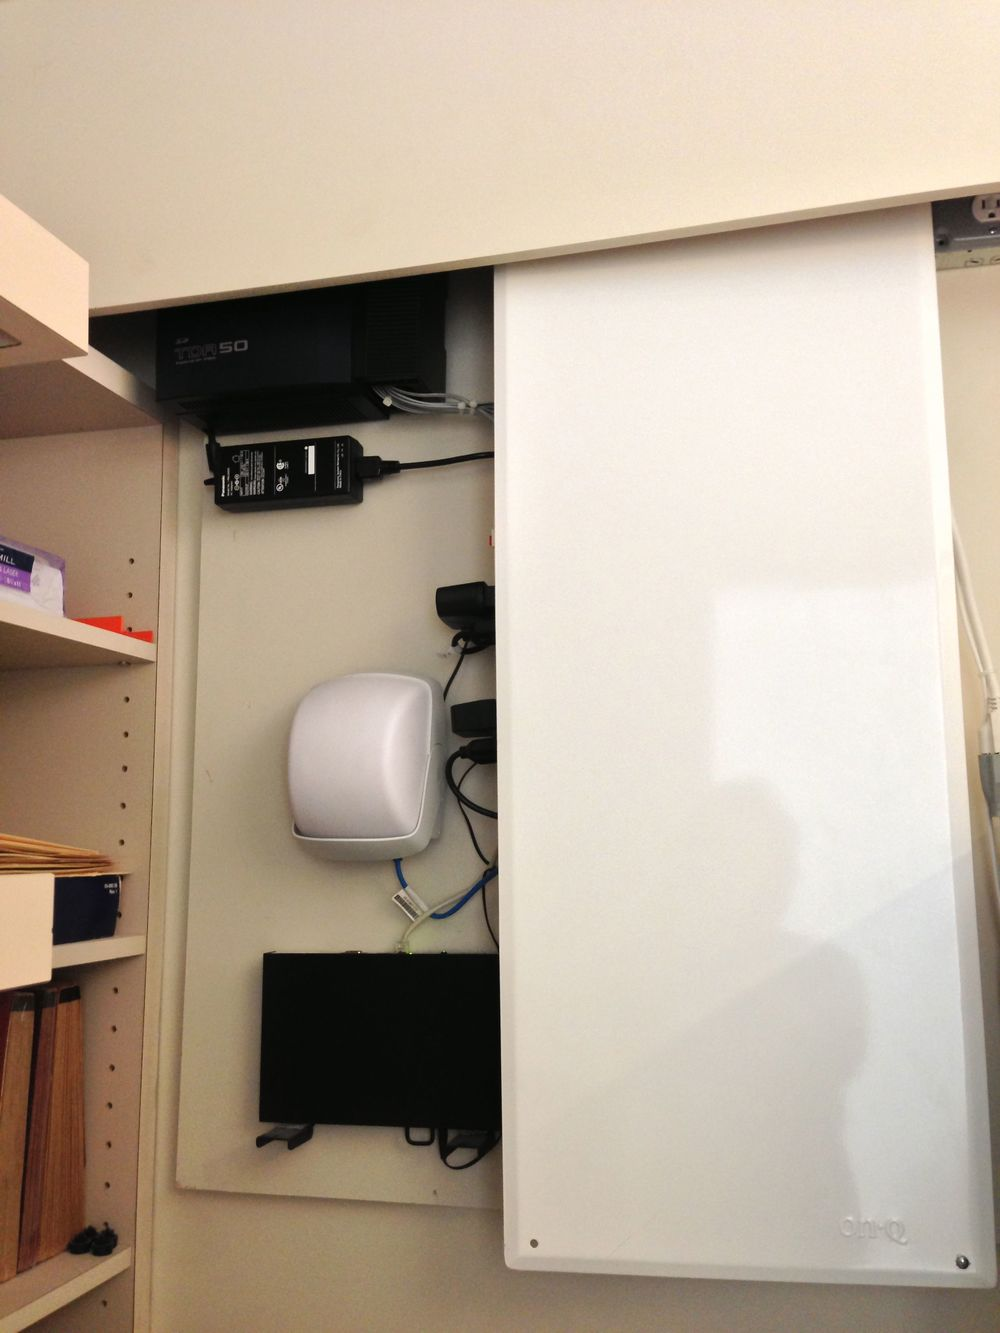 All the equipment is hidden in the mechanical closet, moving the electronics and their cords out of sight.